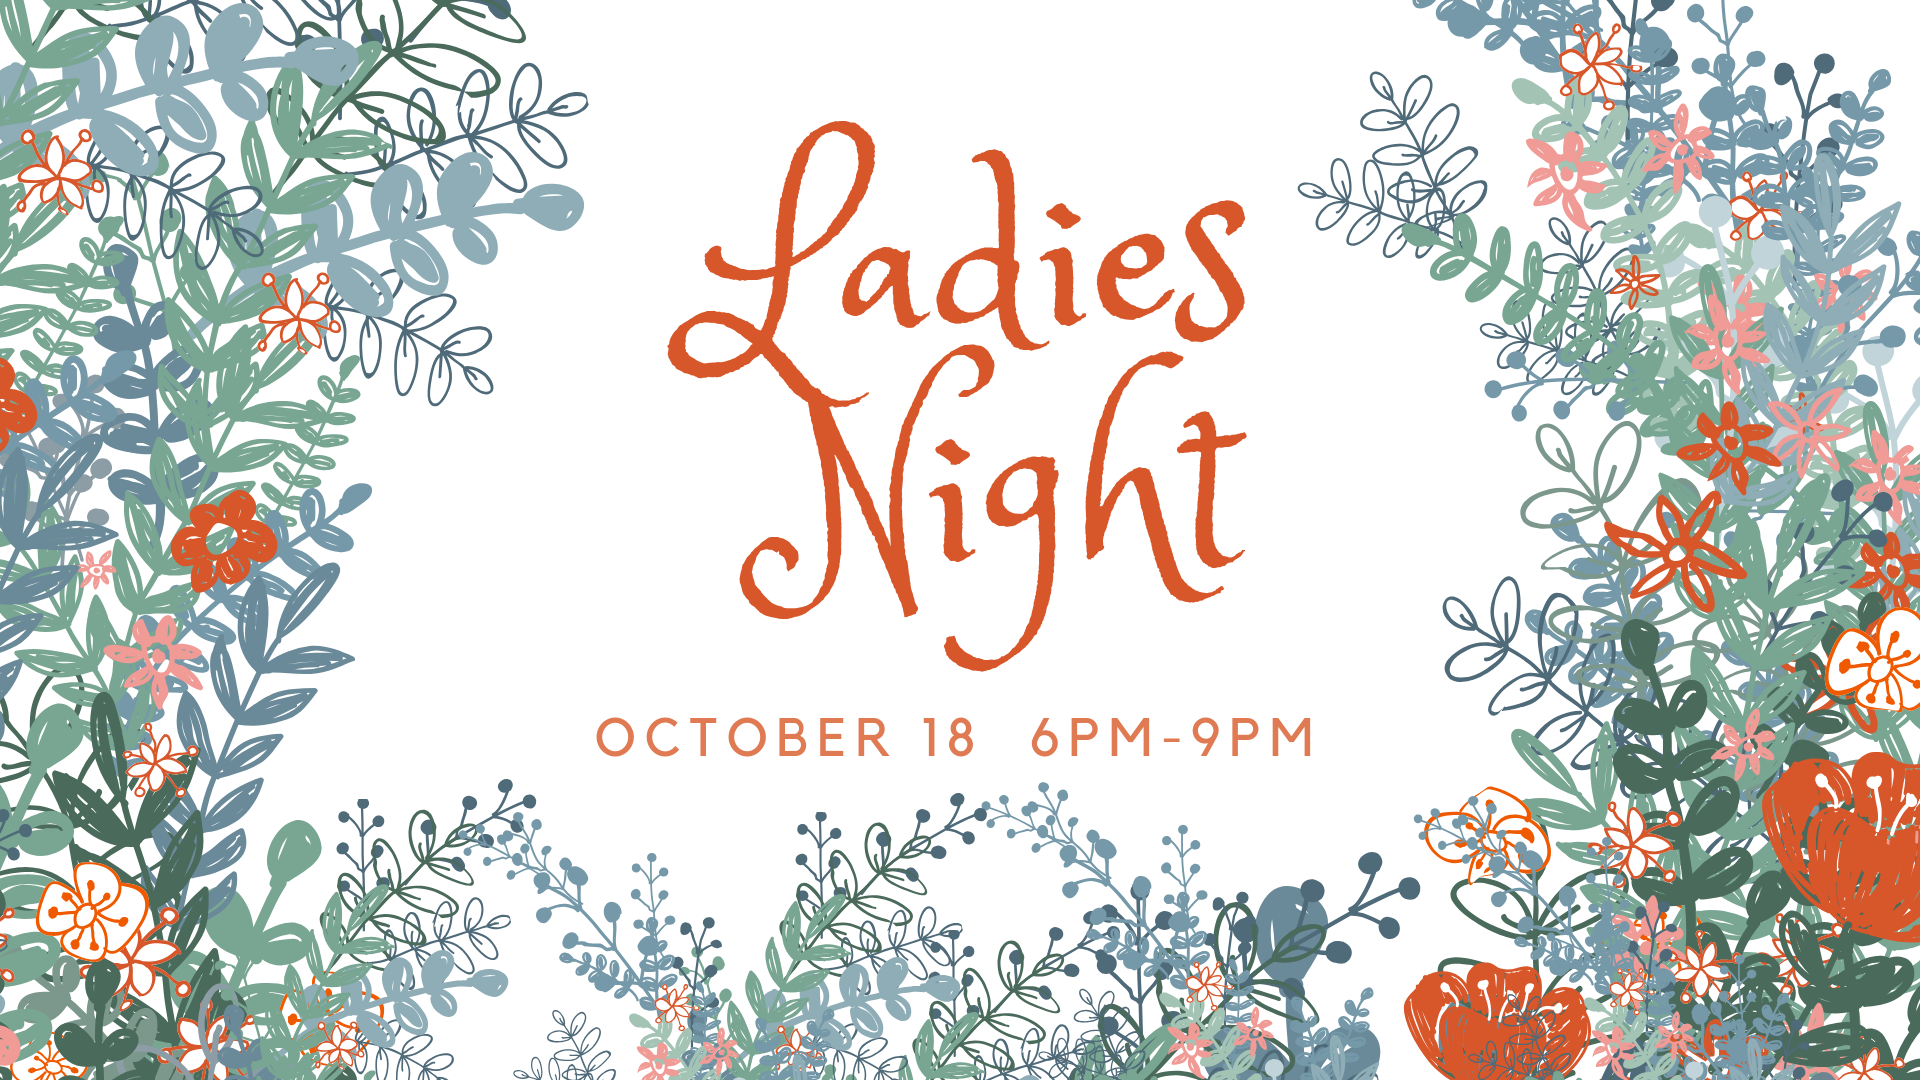 PoCo Newsletter Ladies Night.png